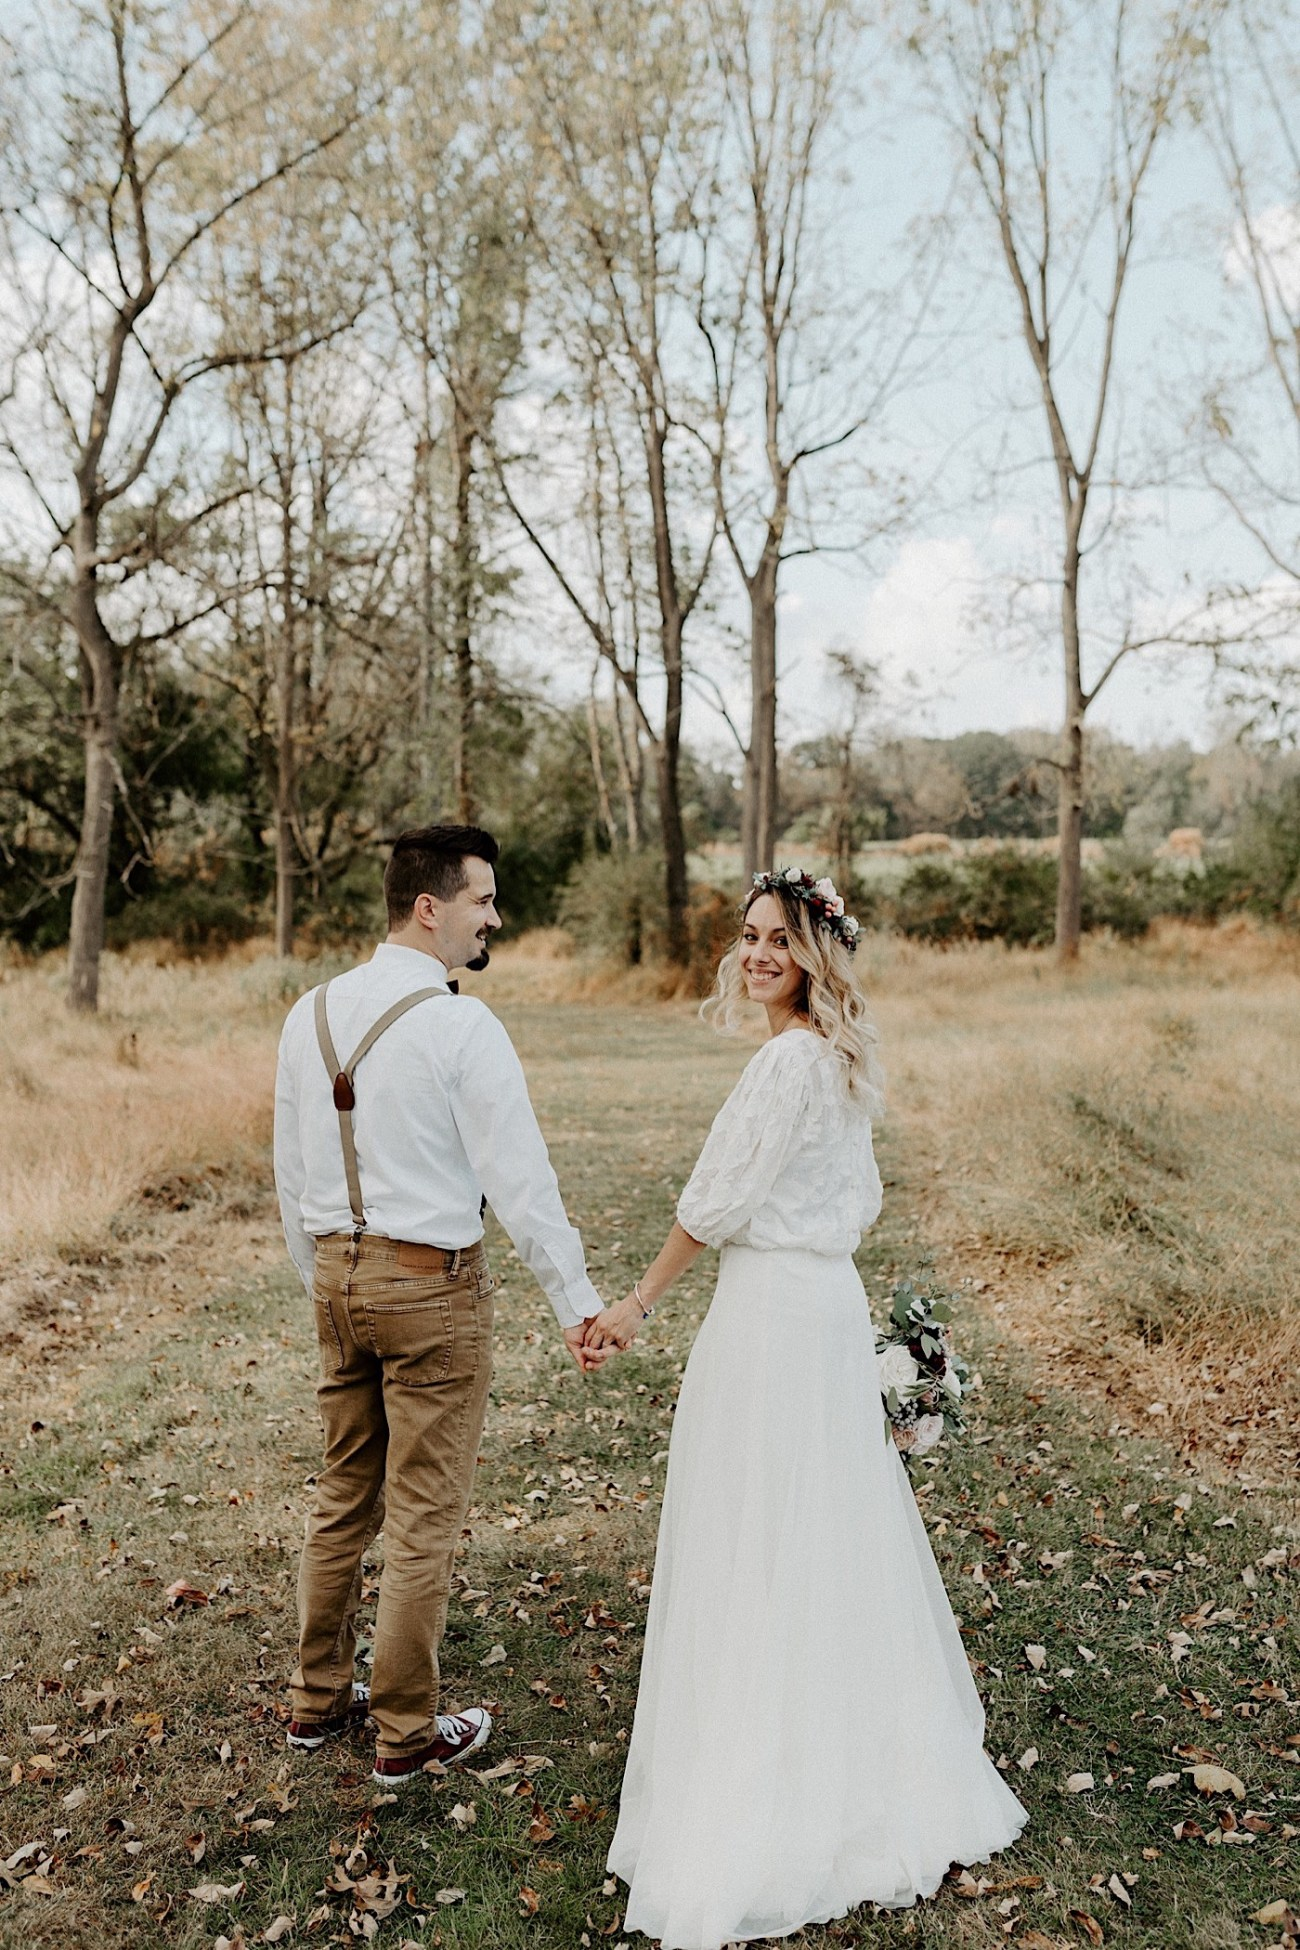 Woolverton Inn Elopement NJ Wedding Photographer Boho Wedding 009